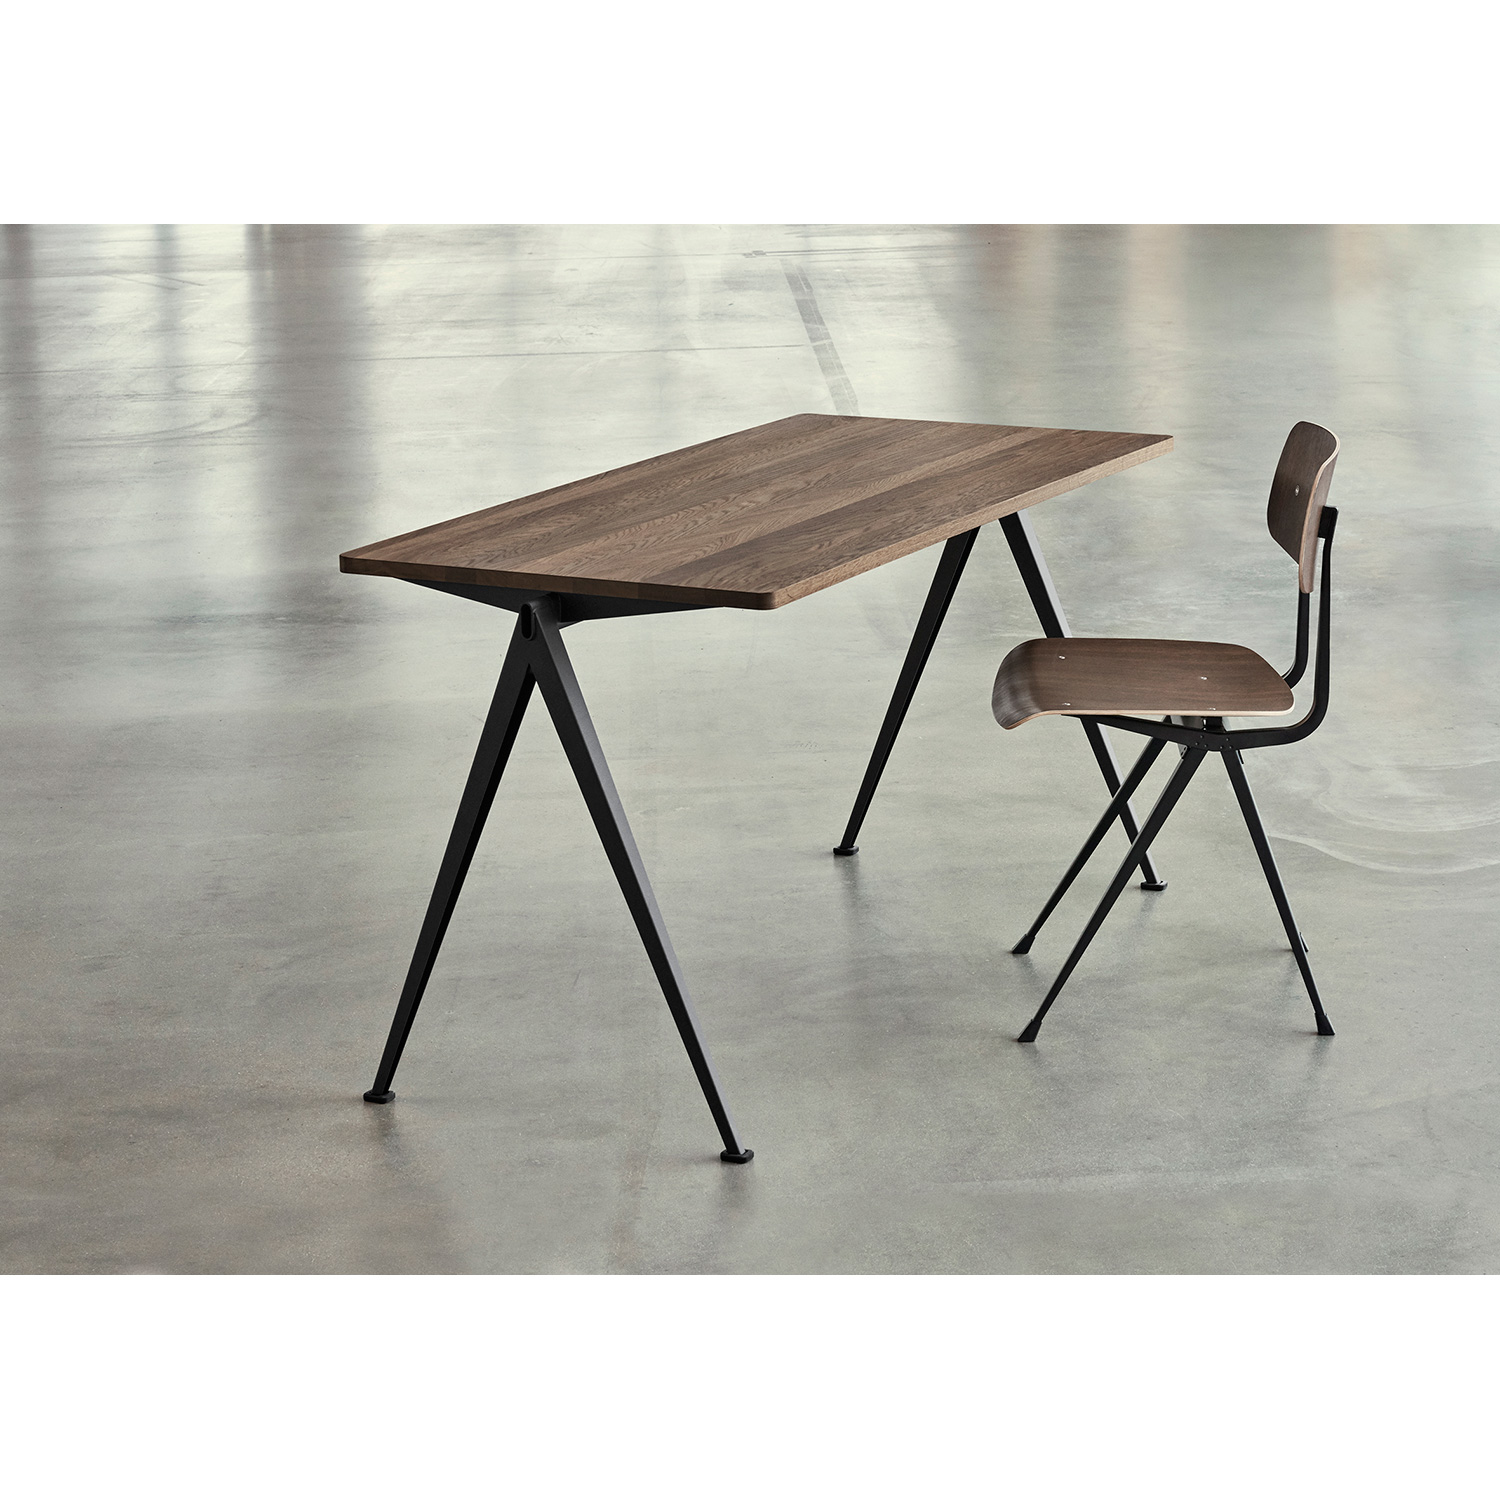 Pyramid desk 01 140x65, black frame/smoked